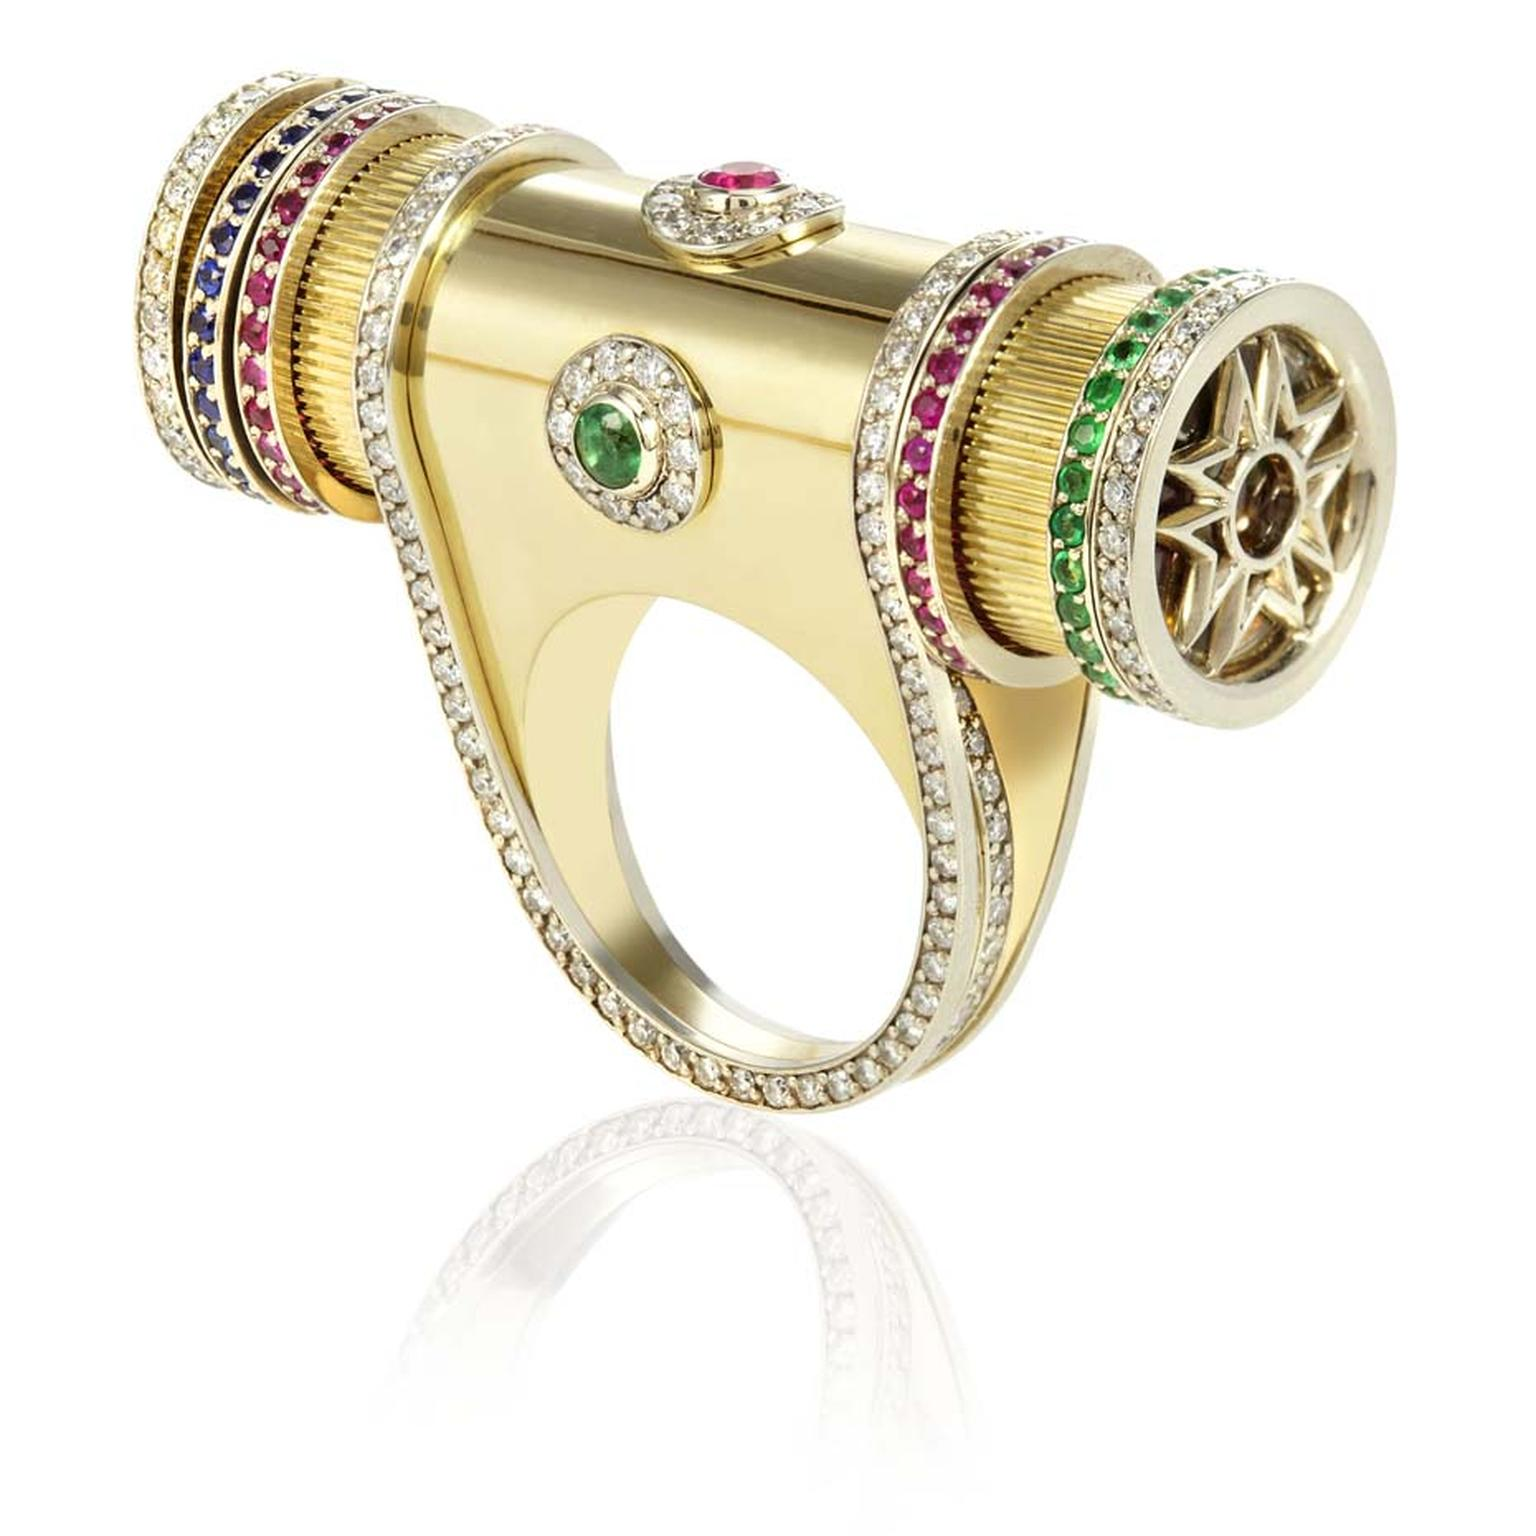 Sybarite Masterpiece collection Kaleidoscope ring with white and yellow gold, diamonds, sapphires, rubies and emeralds.